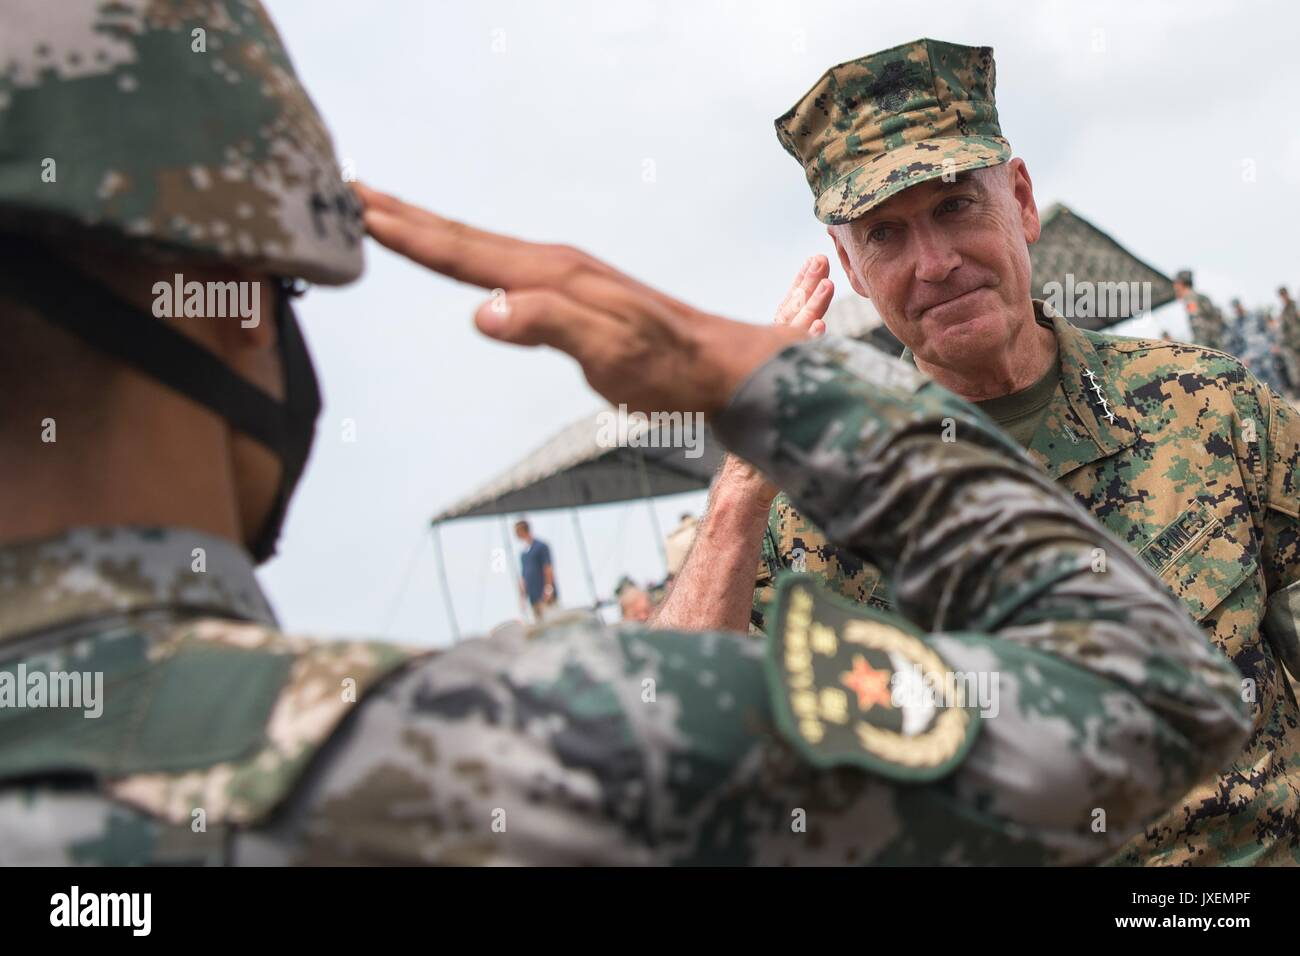 Haichung, China. 16th Aug, 2017. U.S. Chairman of the Joint Chiefs Gen. Joseph Dunford, center, salutes a Chinese Stock Photo